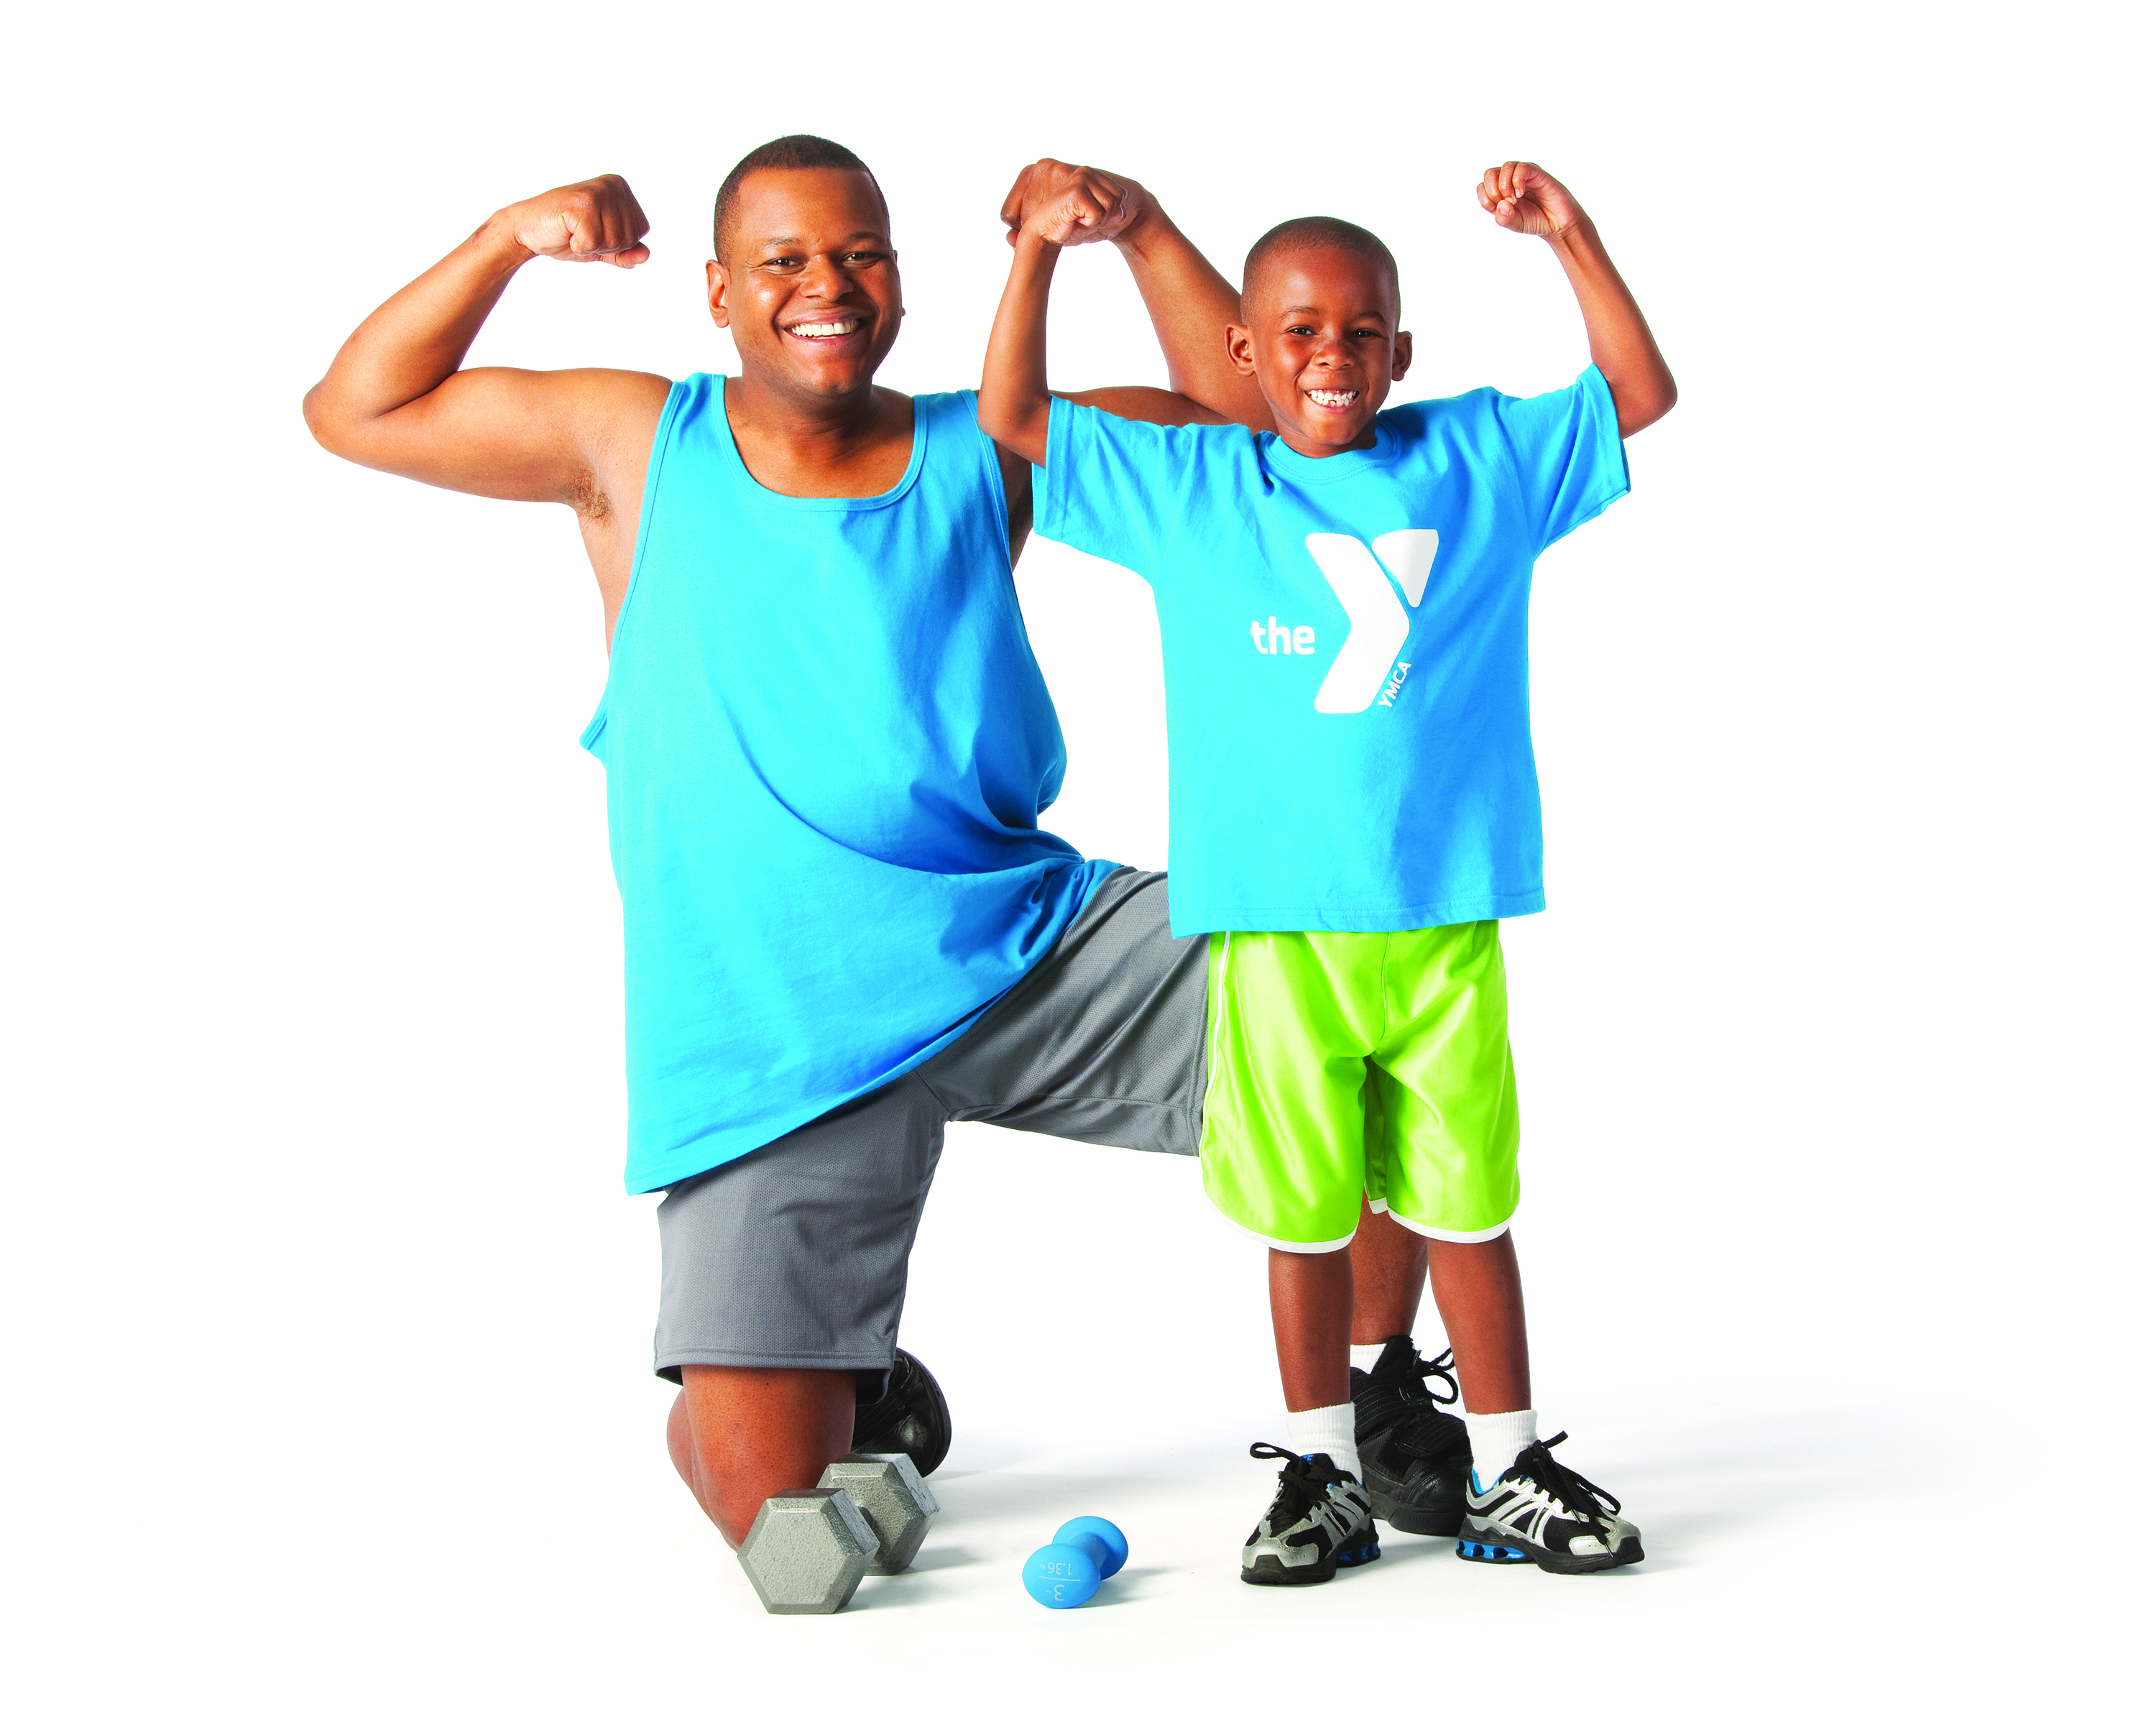 Son and Father Flexing Muscles